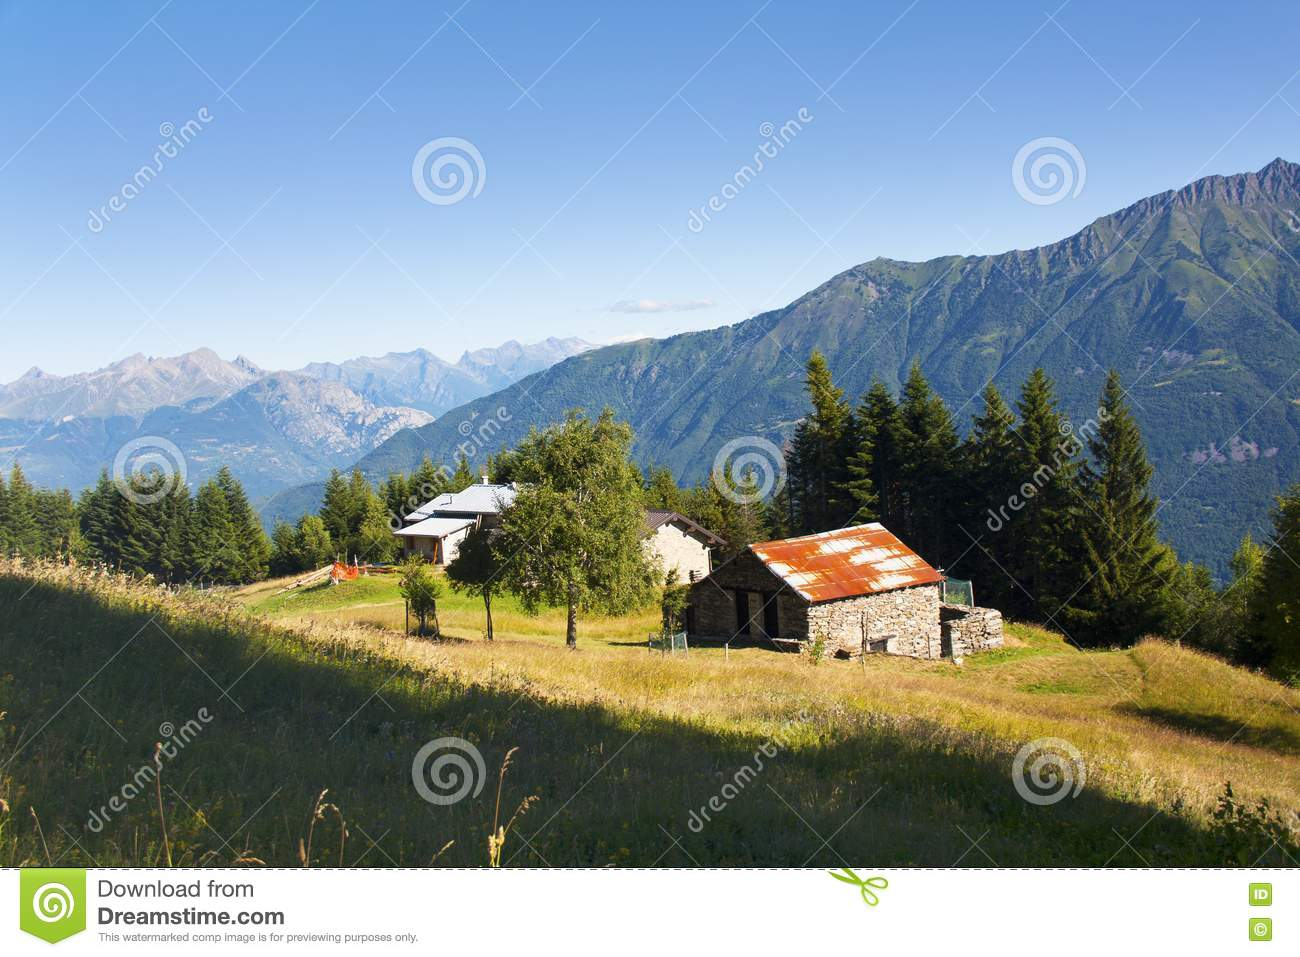 House in the meadow royalty free stock photography image for Meadow house